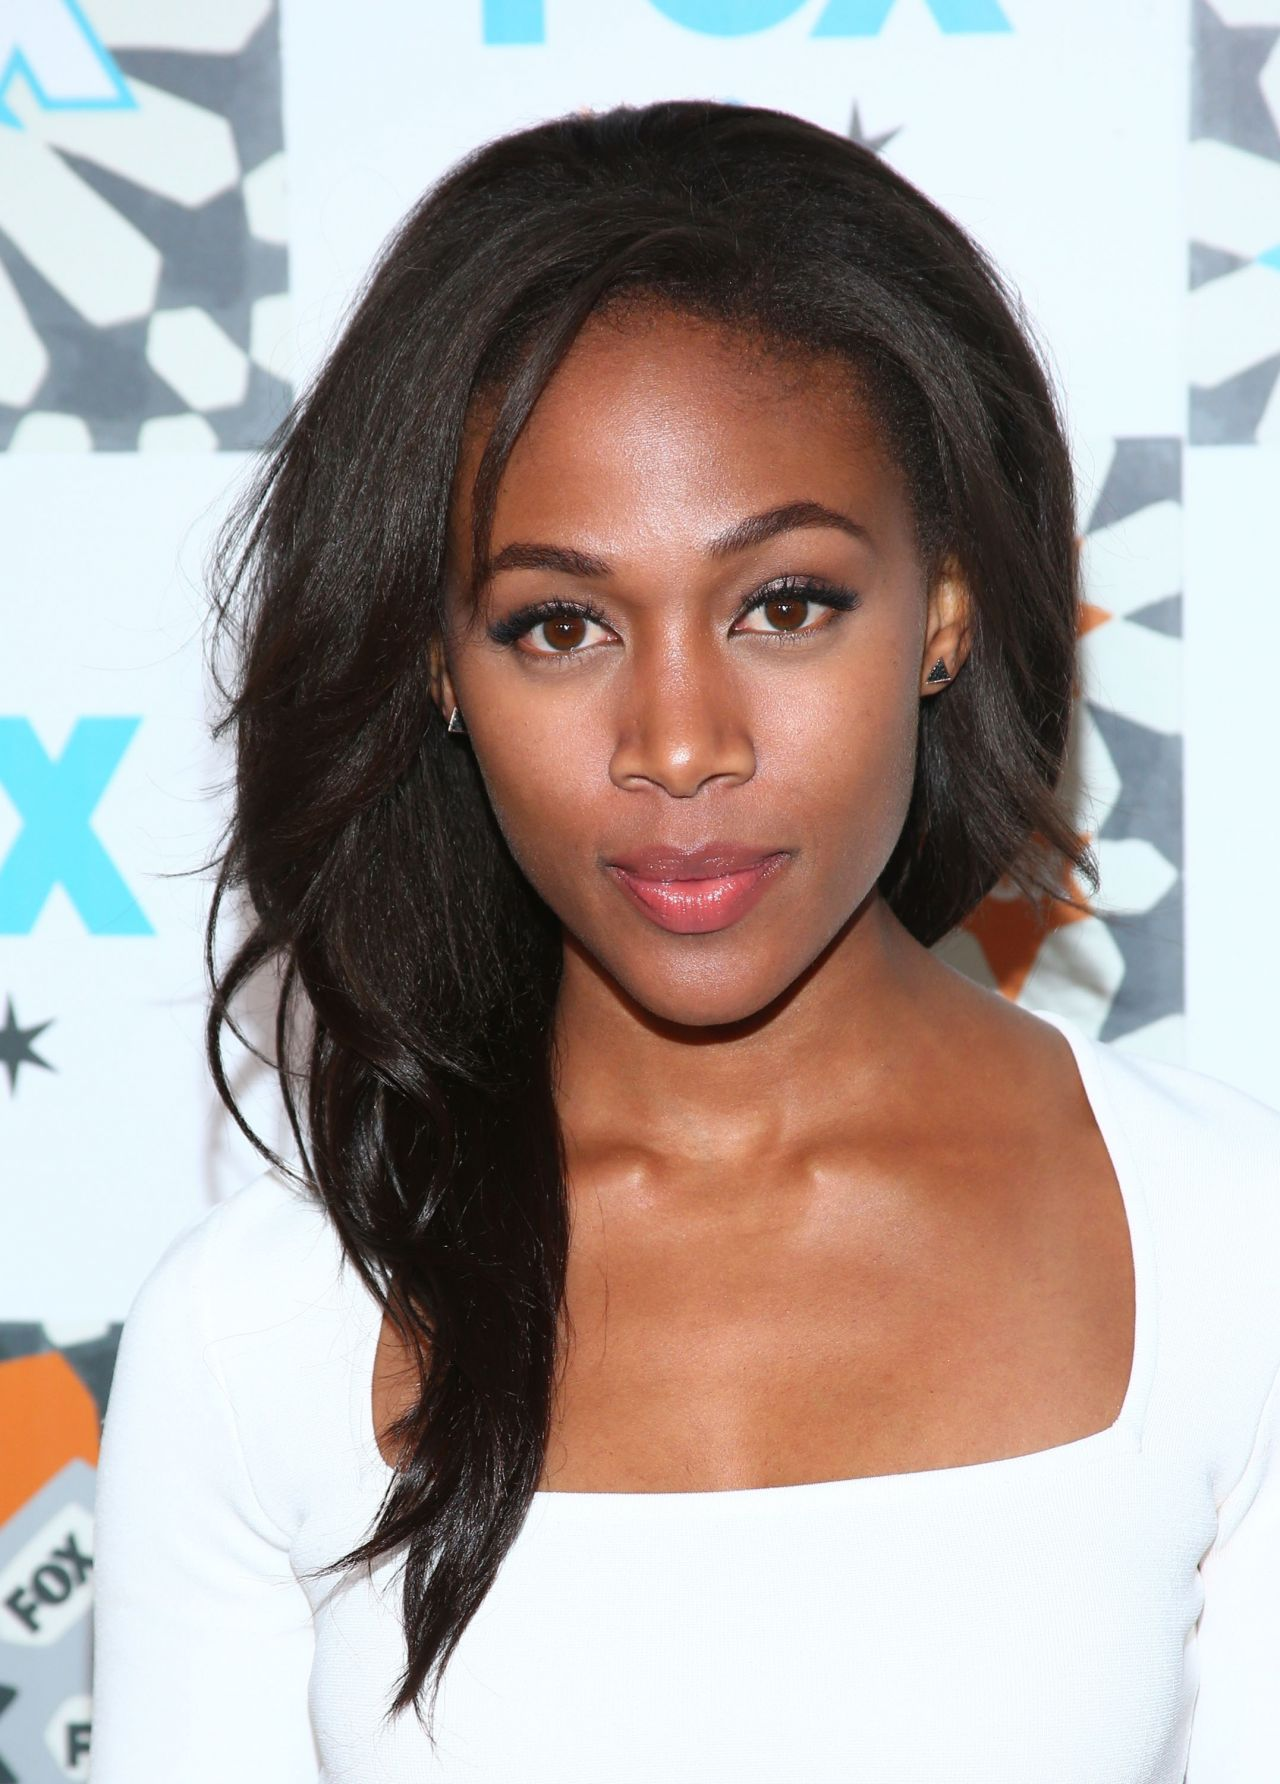 The 32-year old daughter of father (?) and mother(?), 155 cm tall Nicole Beharie in 2017 photo